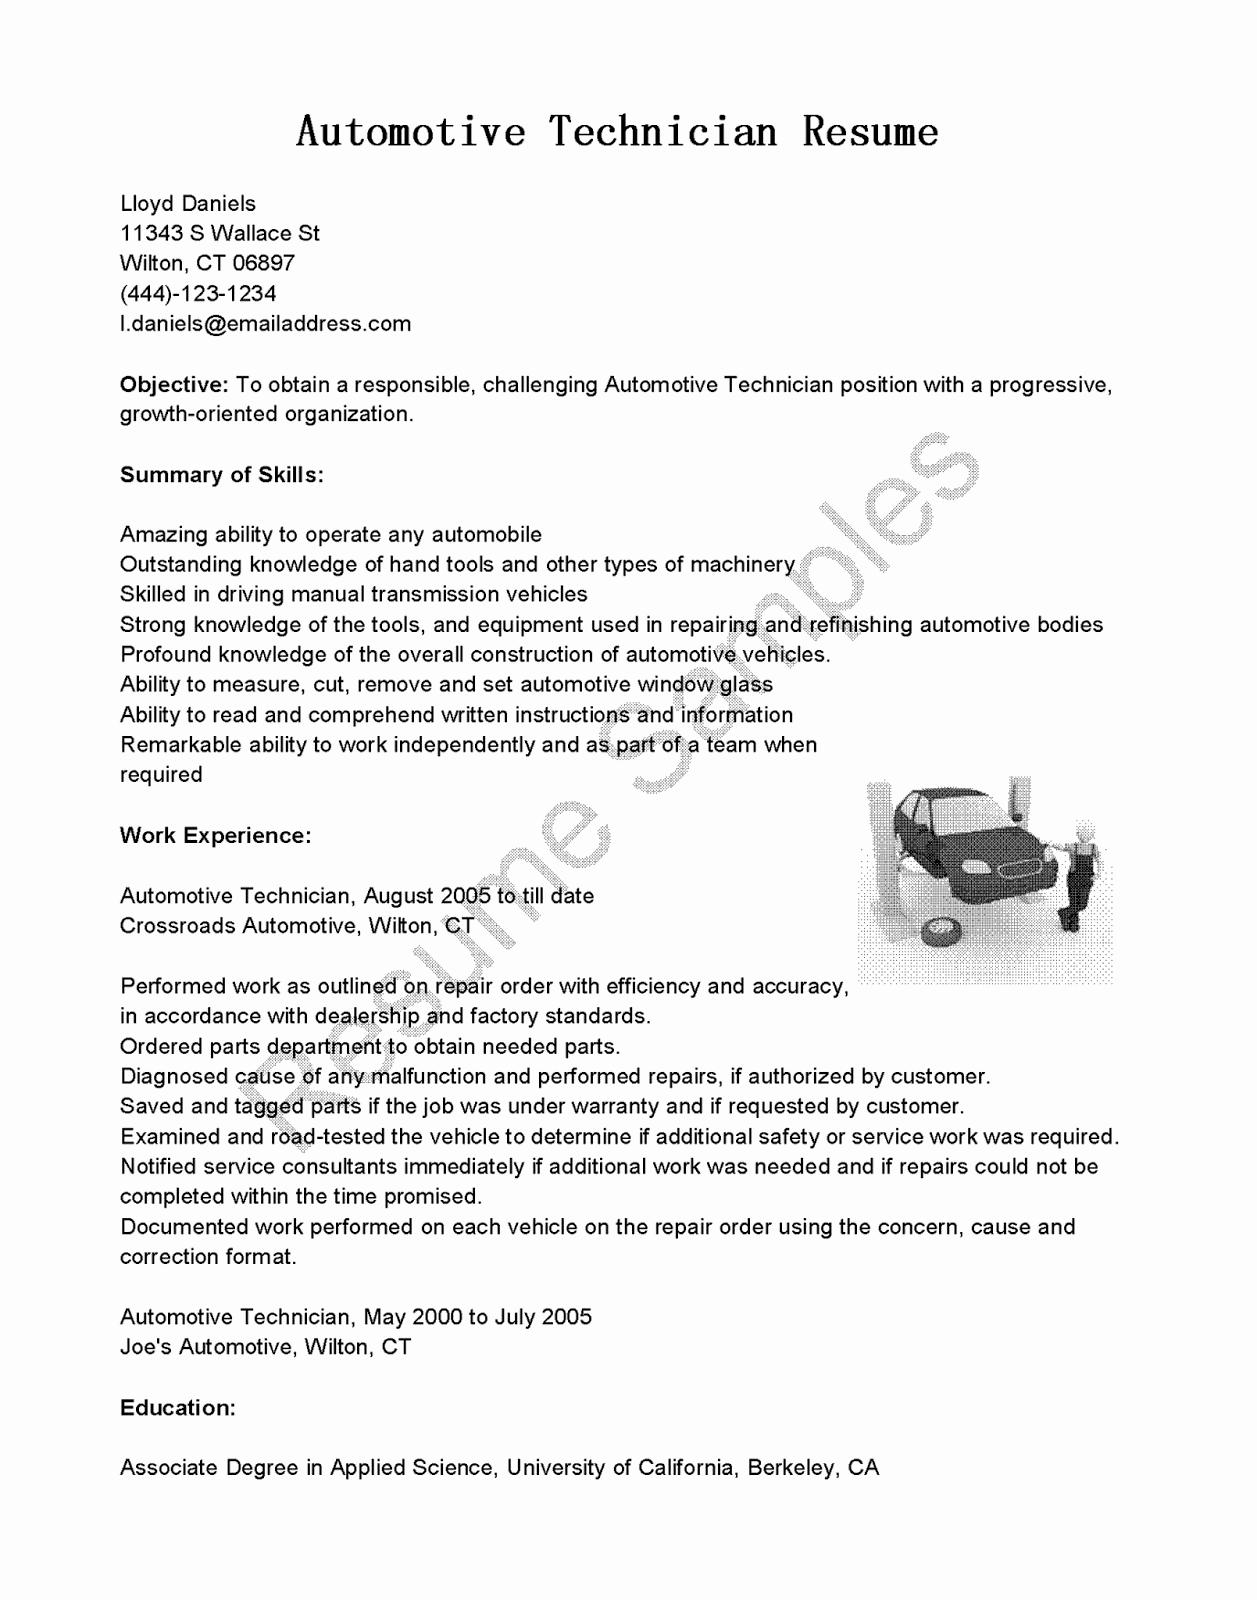 Resume Template for Pharmacy Technician - Resume Educational Background format Elegant Pharmacy Technician